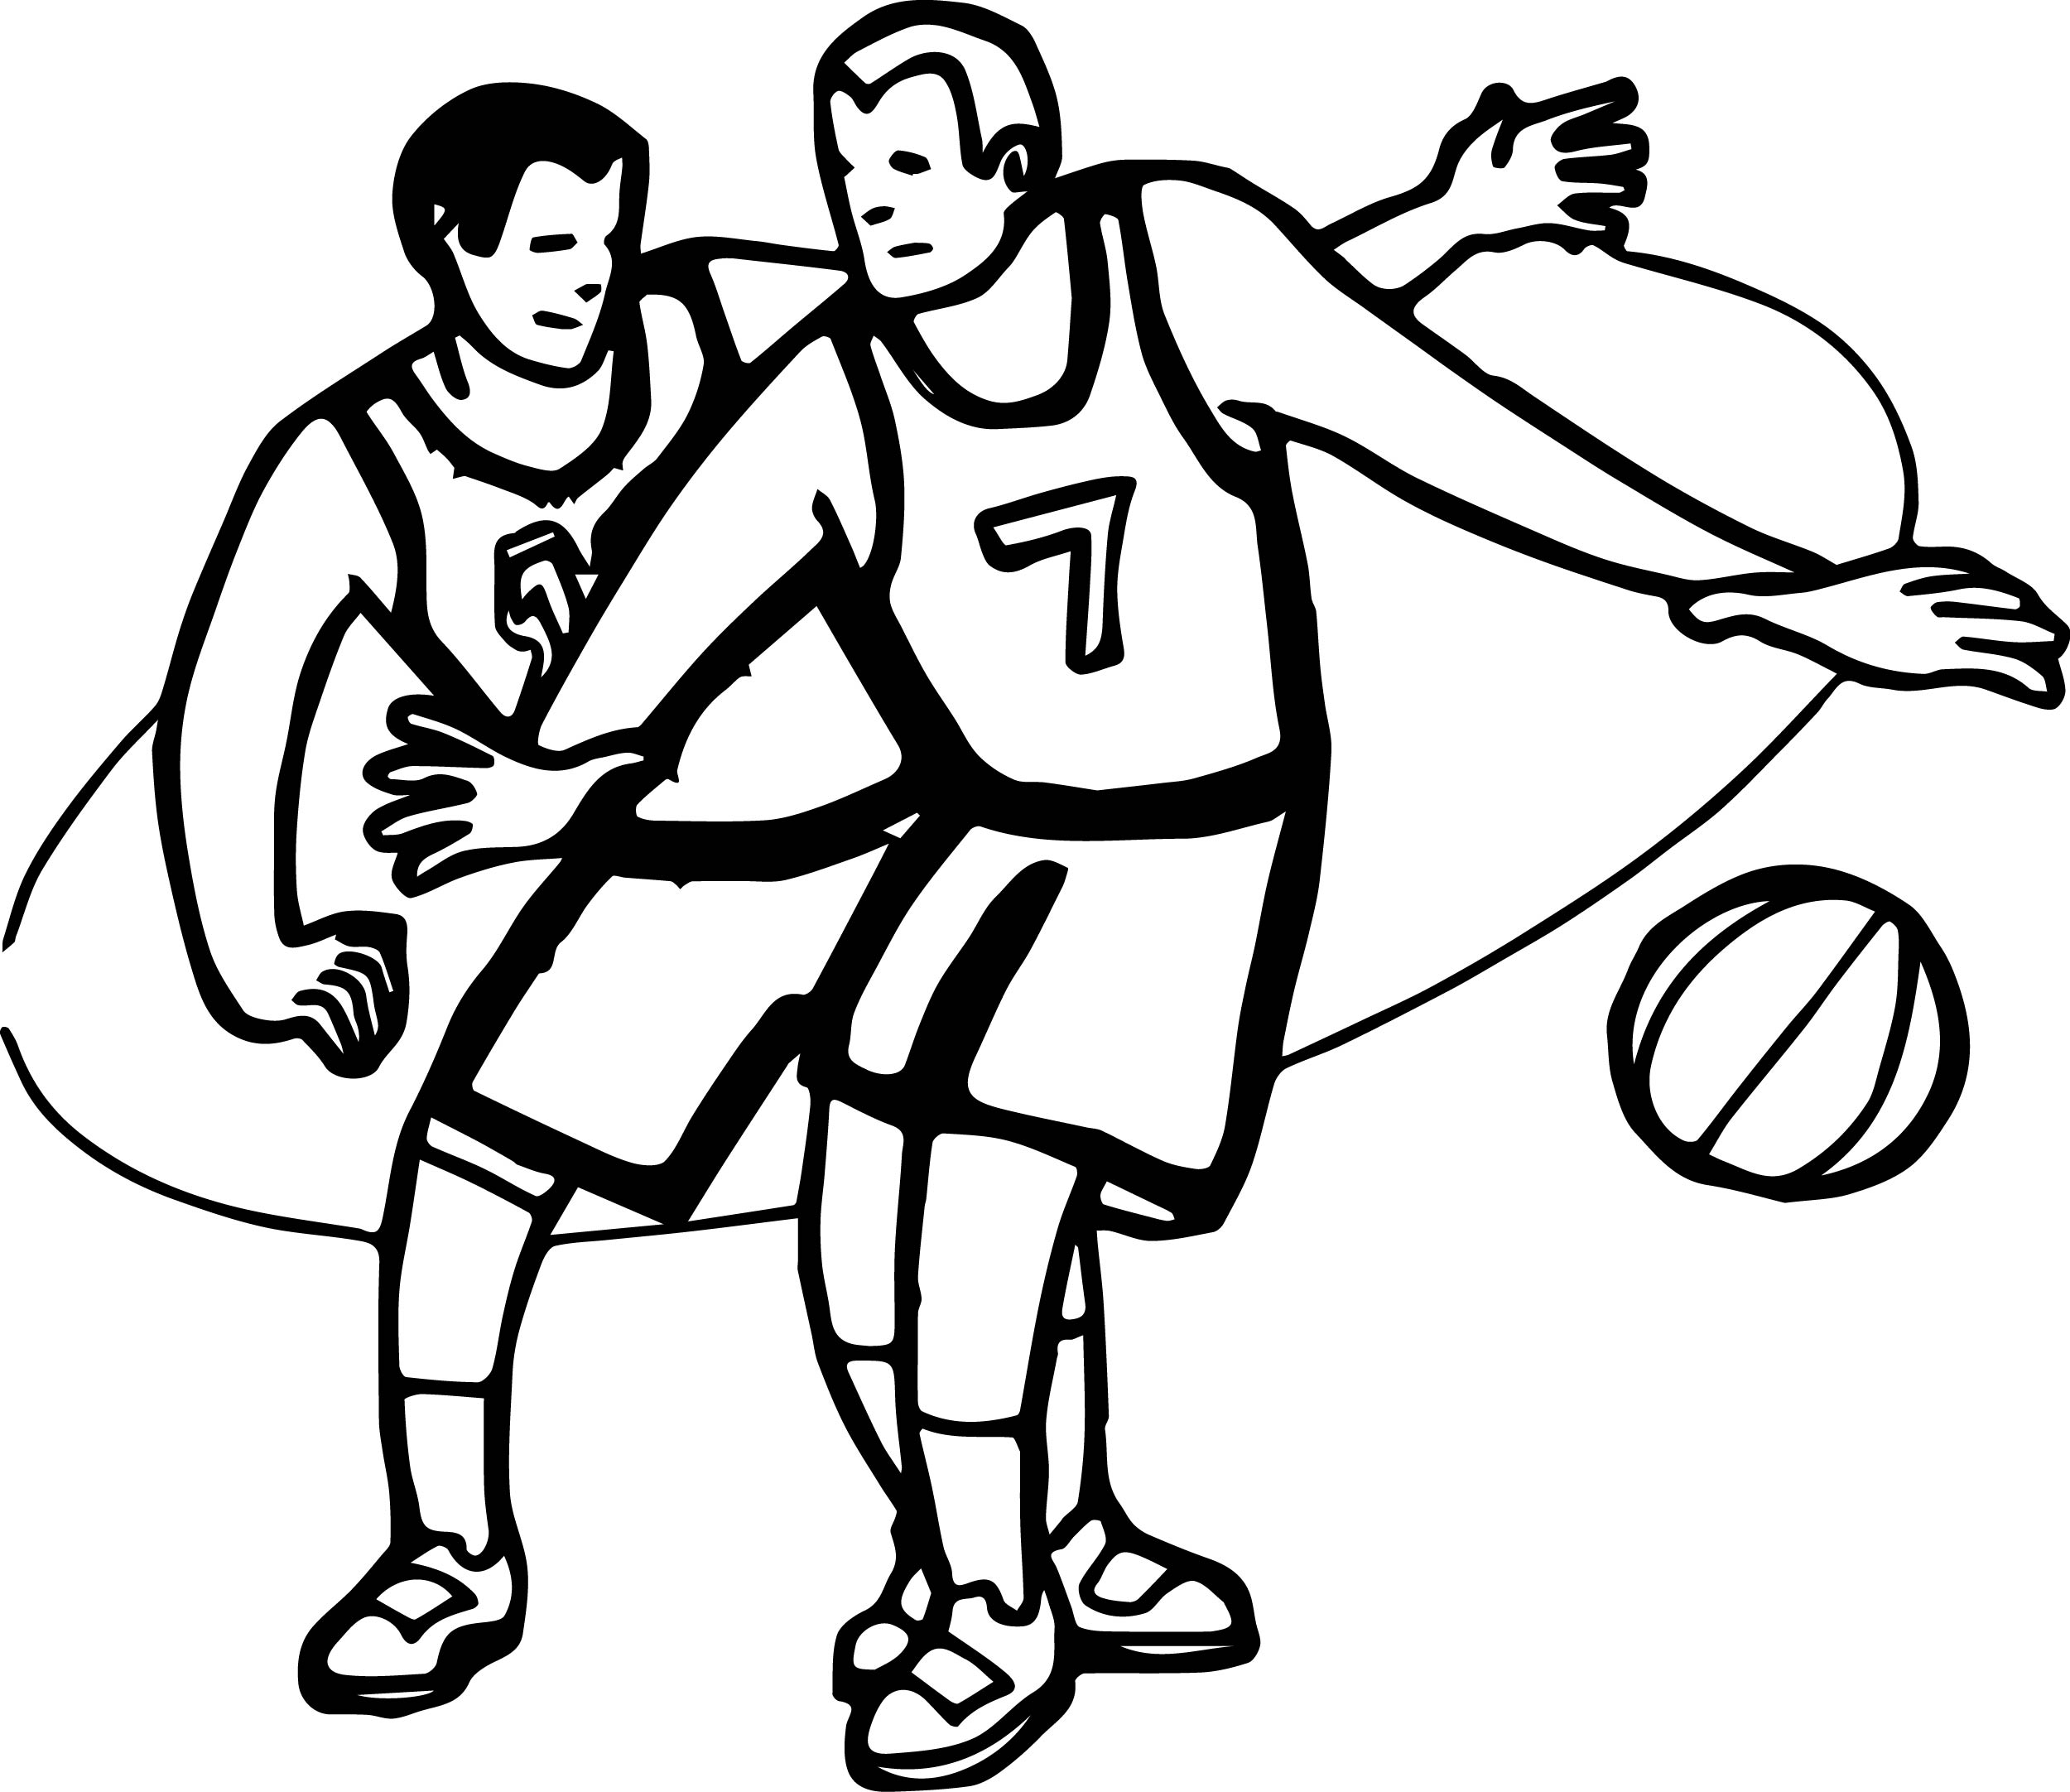 Kids Playing Basketball Coloring Page